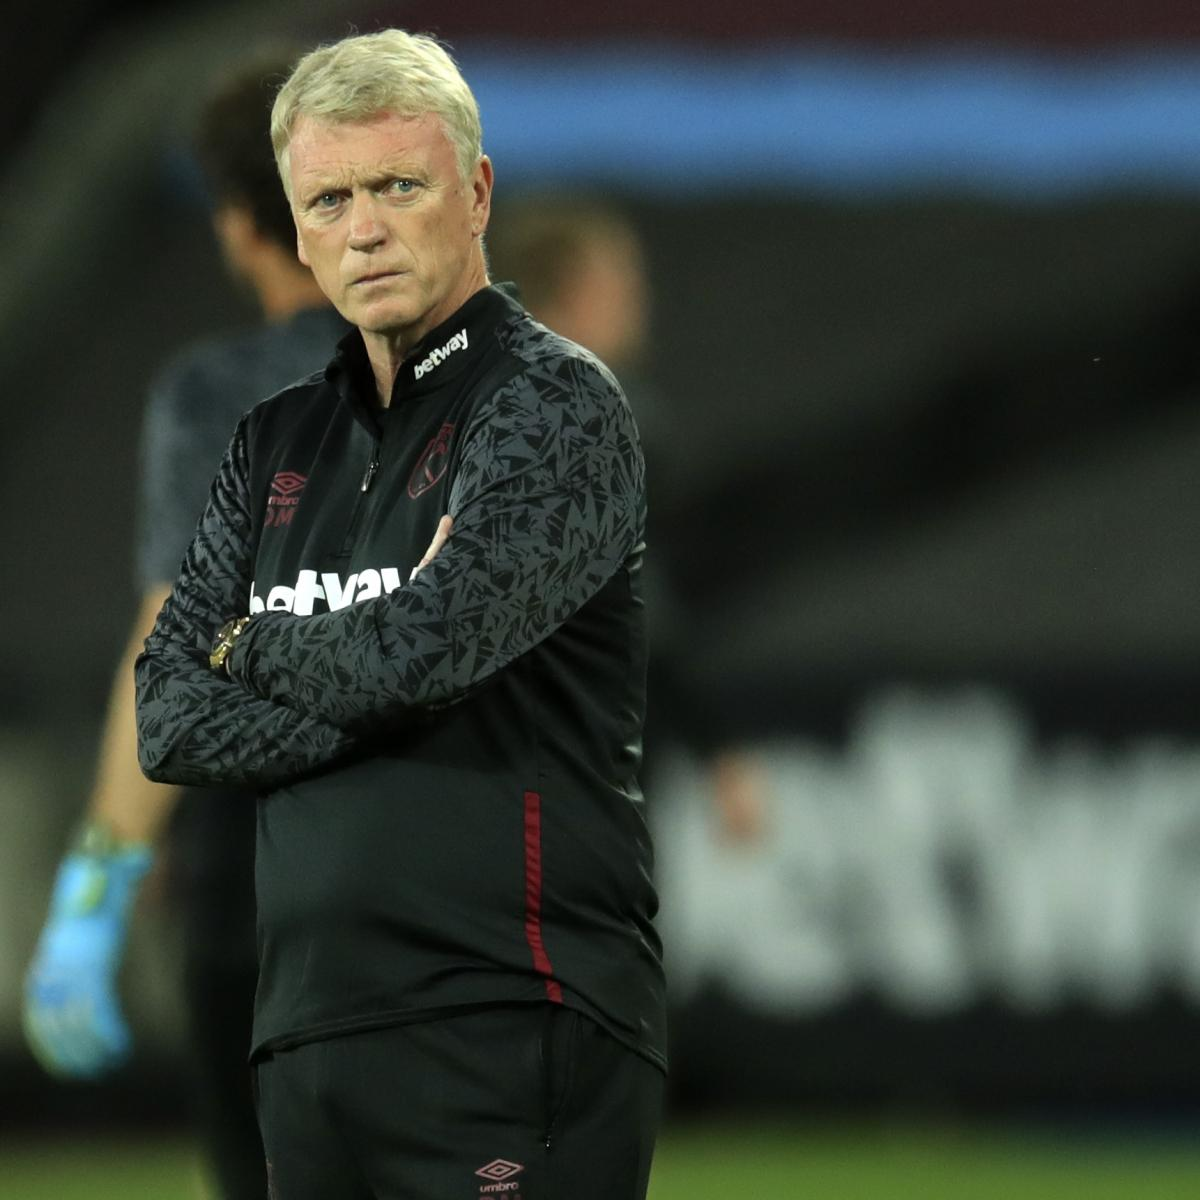 West Ham's David Moyes, Issa Diop, Josh Cullen Test Positive for COVID-19